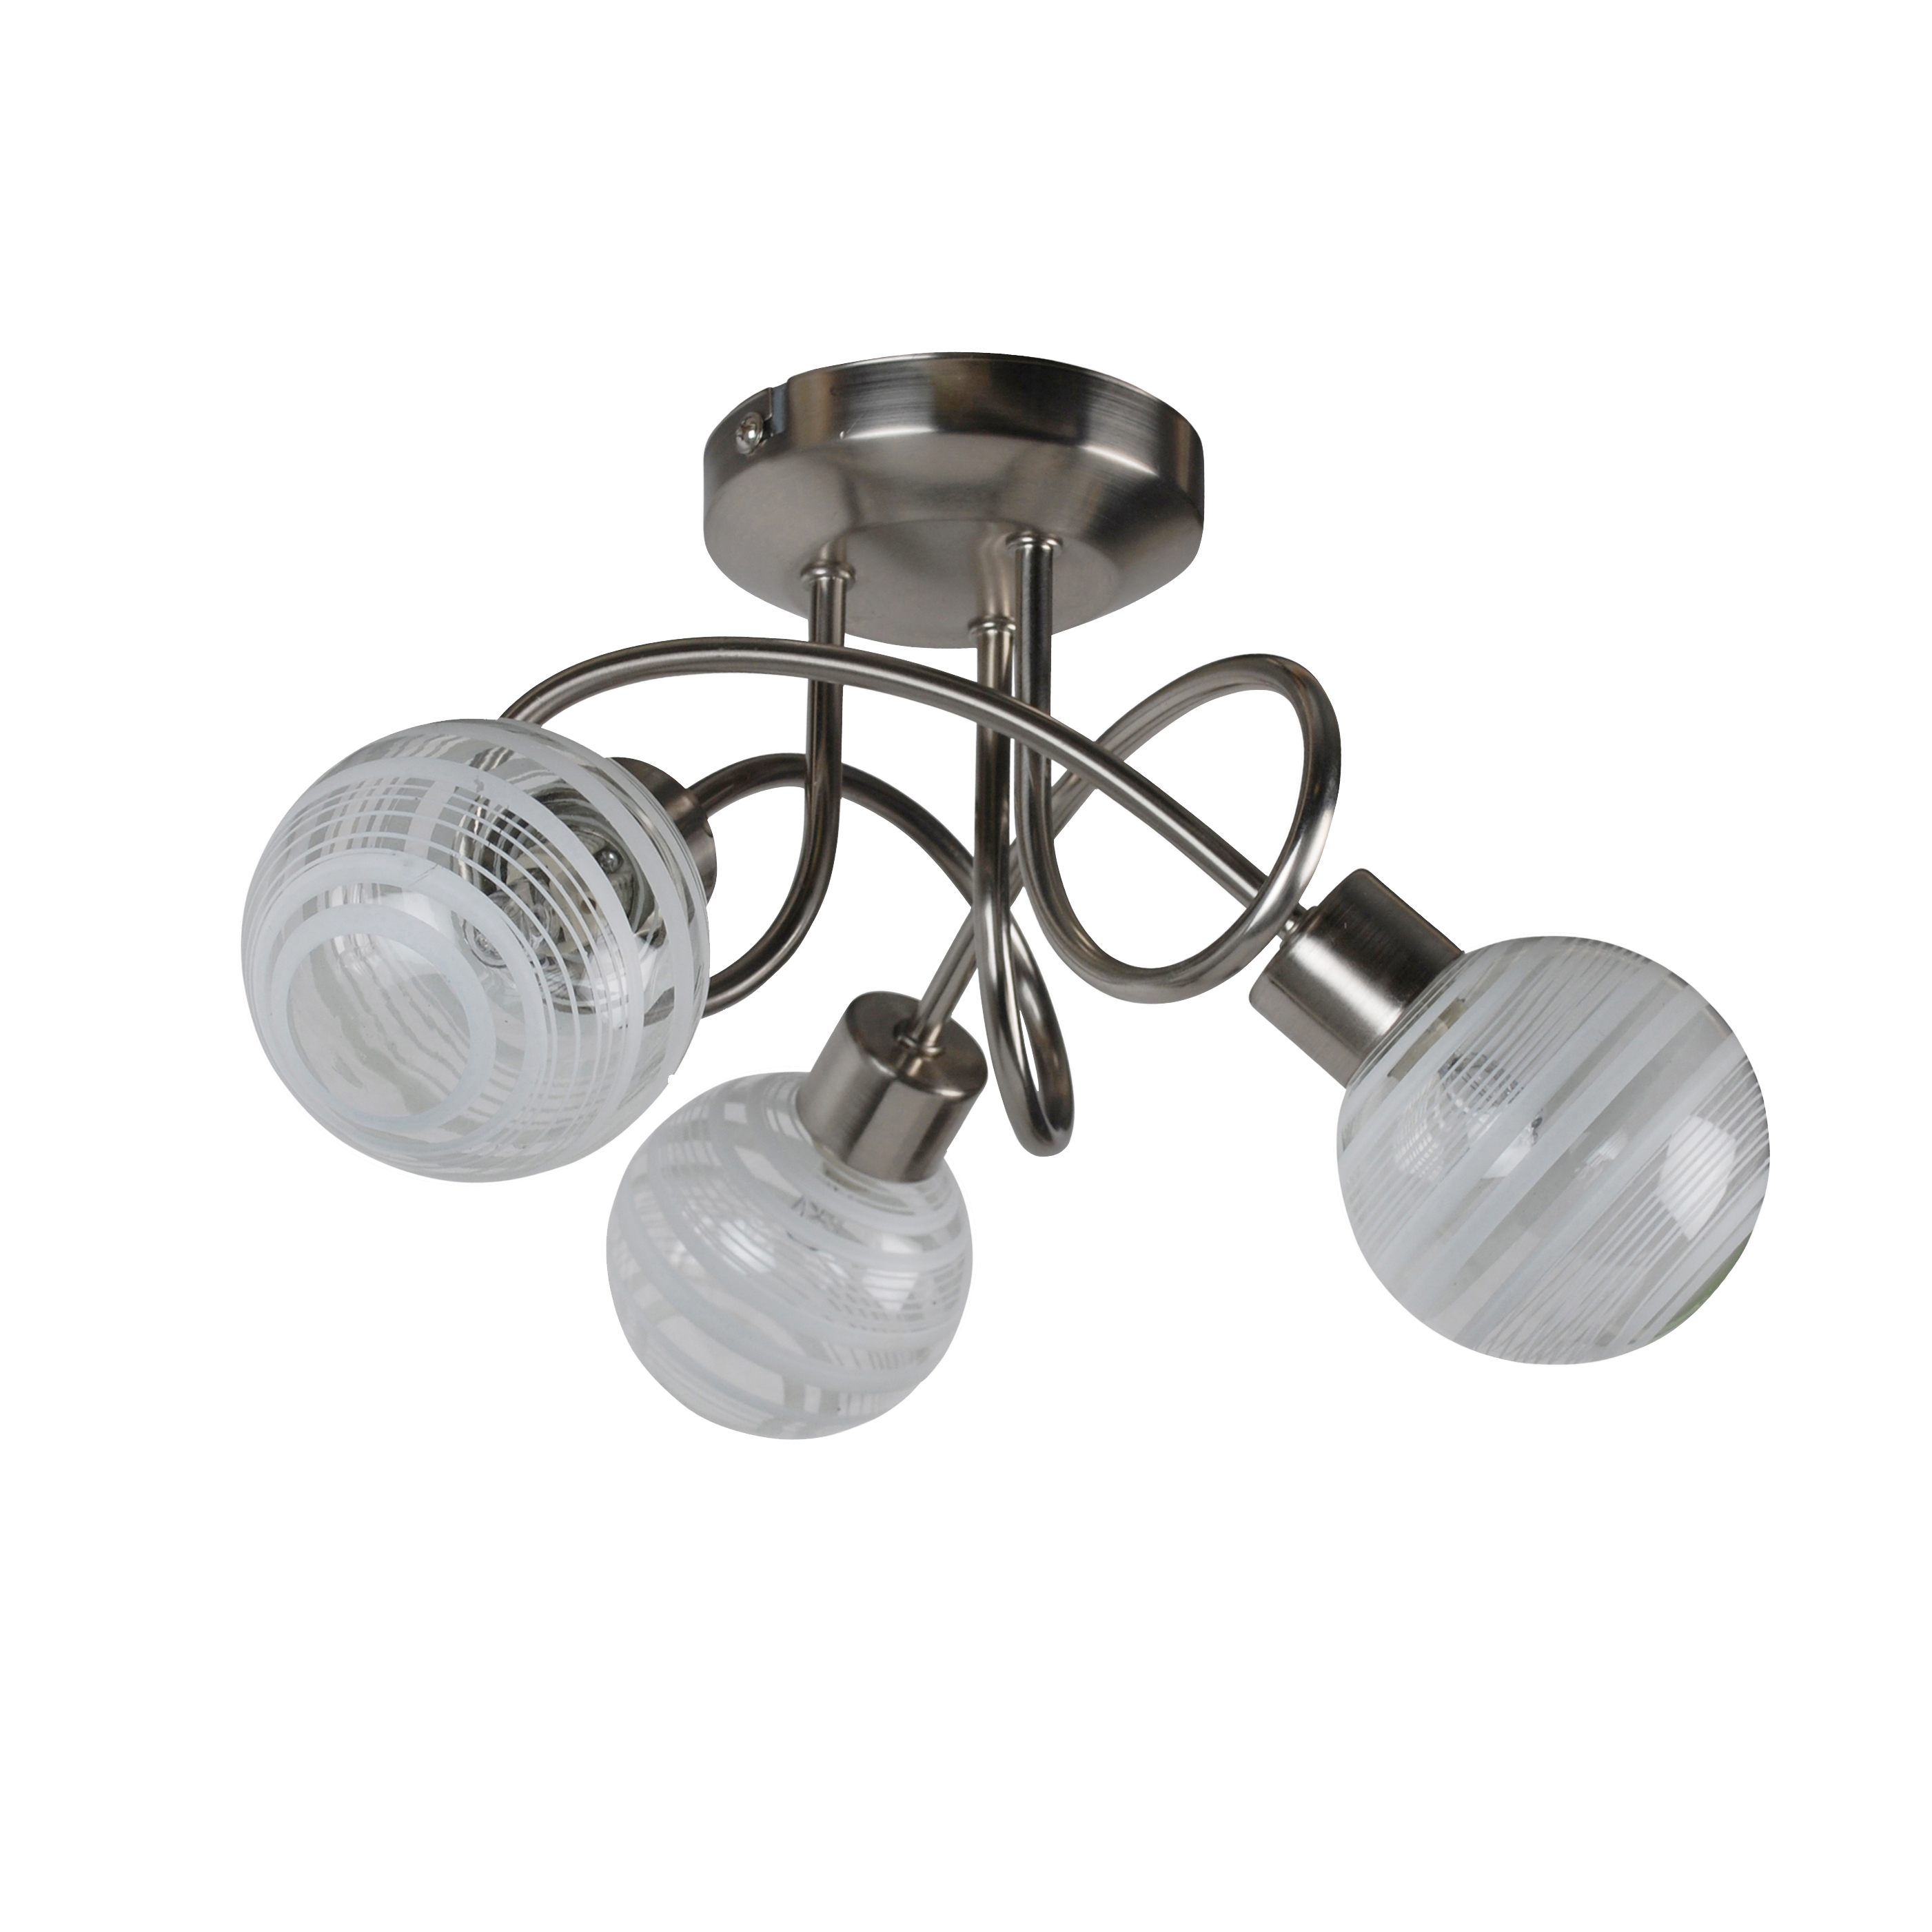 3 Bar Pendant Light Hanging Chrome Effect 3 Way Mounted: Modern Silver Satin Chrome 3 Way Multi Arm Spiral Ceiling